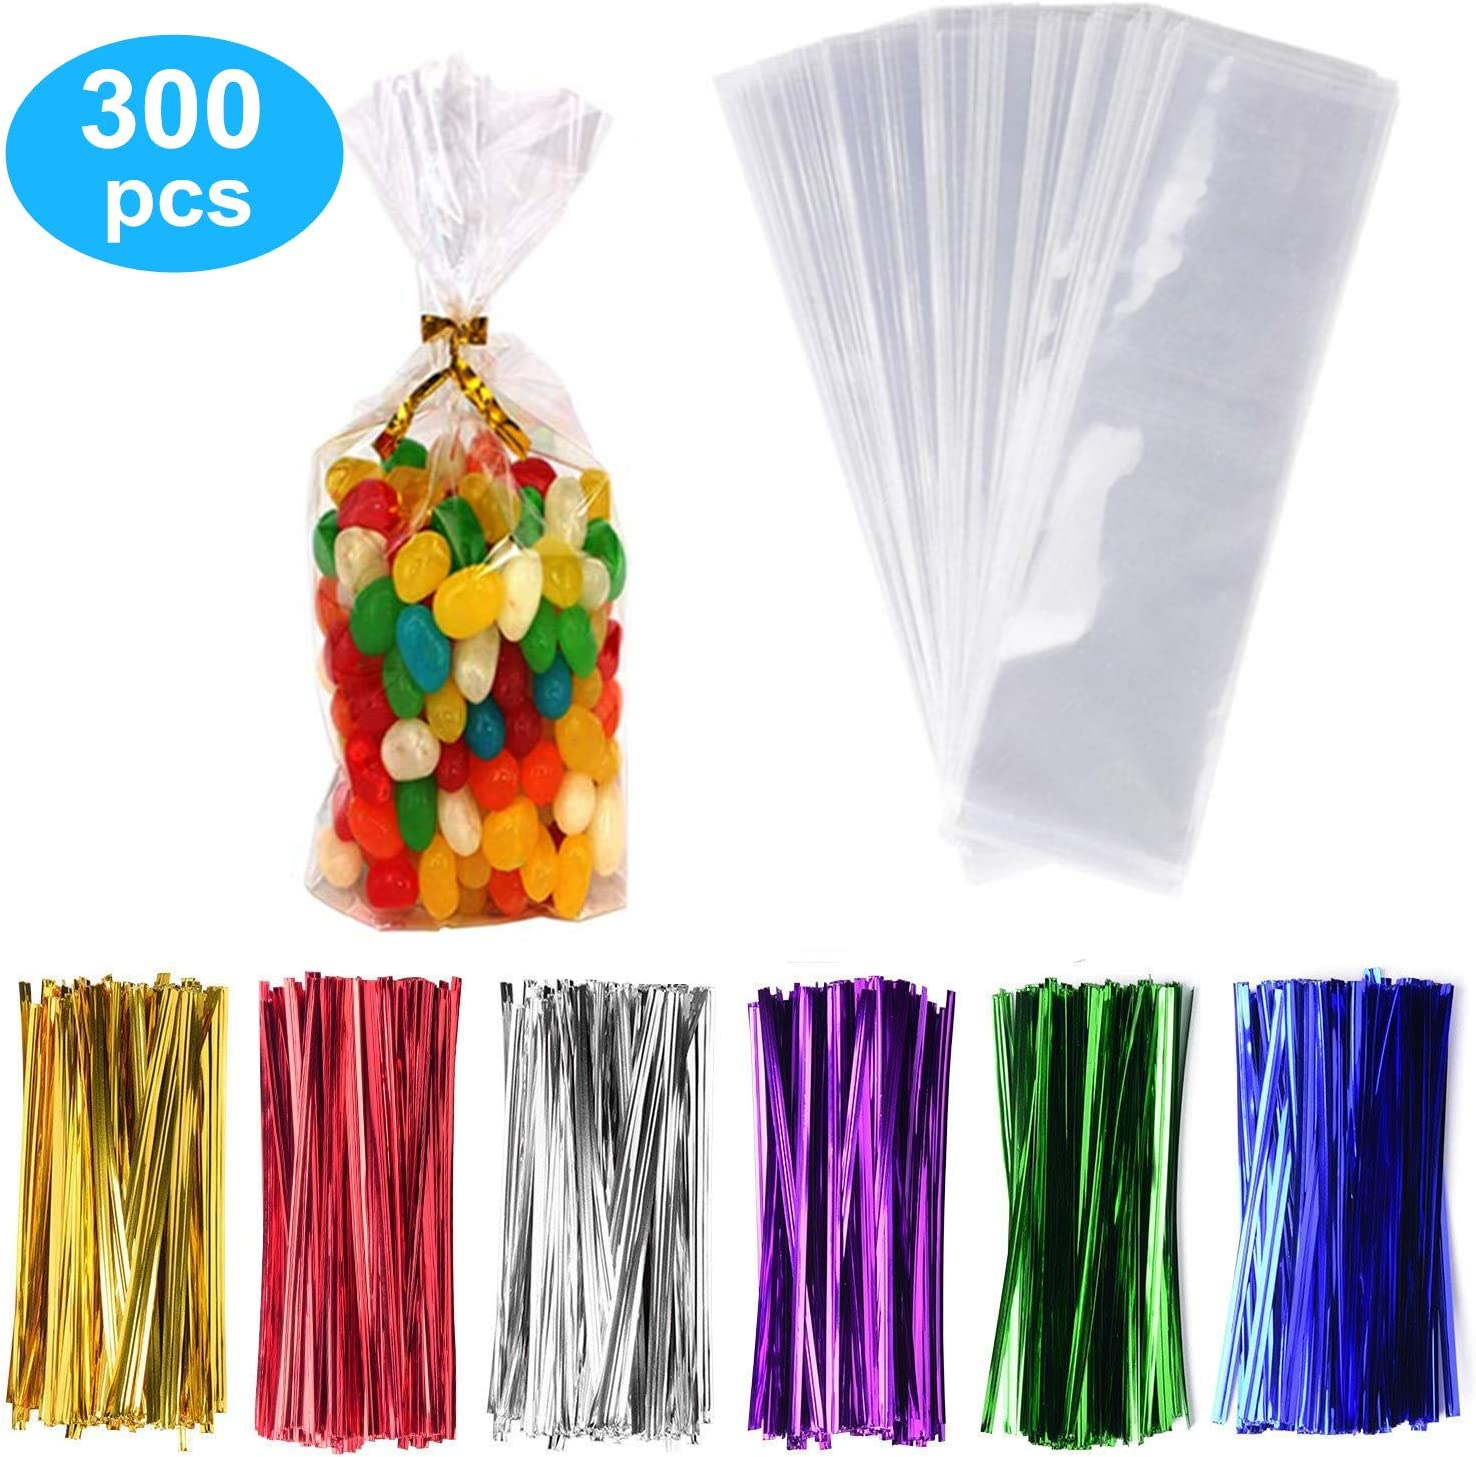 """300 Pack Clear Candy Bags Clear Cellophane Bags 3""""x11"""" Cookie Bags With 3.1"""" Twist Ties 6 Mix Colors - 1.4mils Thickness OPP Plastic Bags for Wedding Birthday Cake Pops Gift Supplies(3""""x11"""")"""